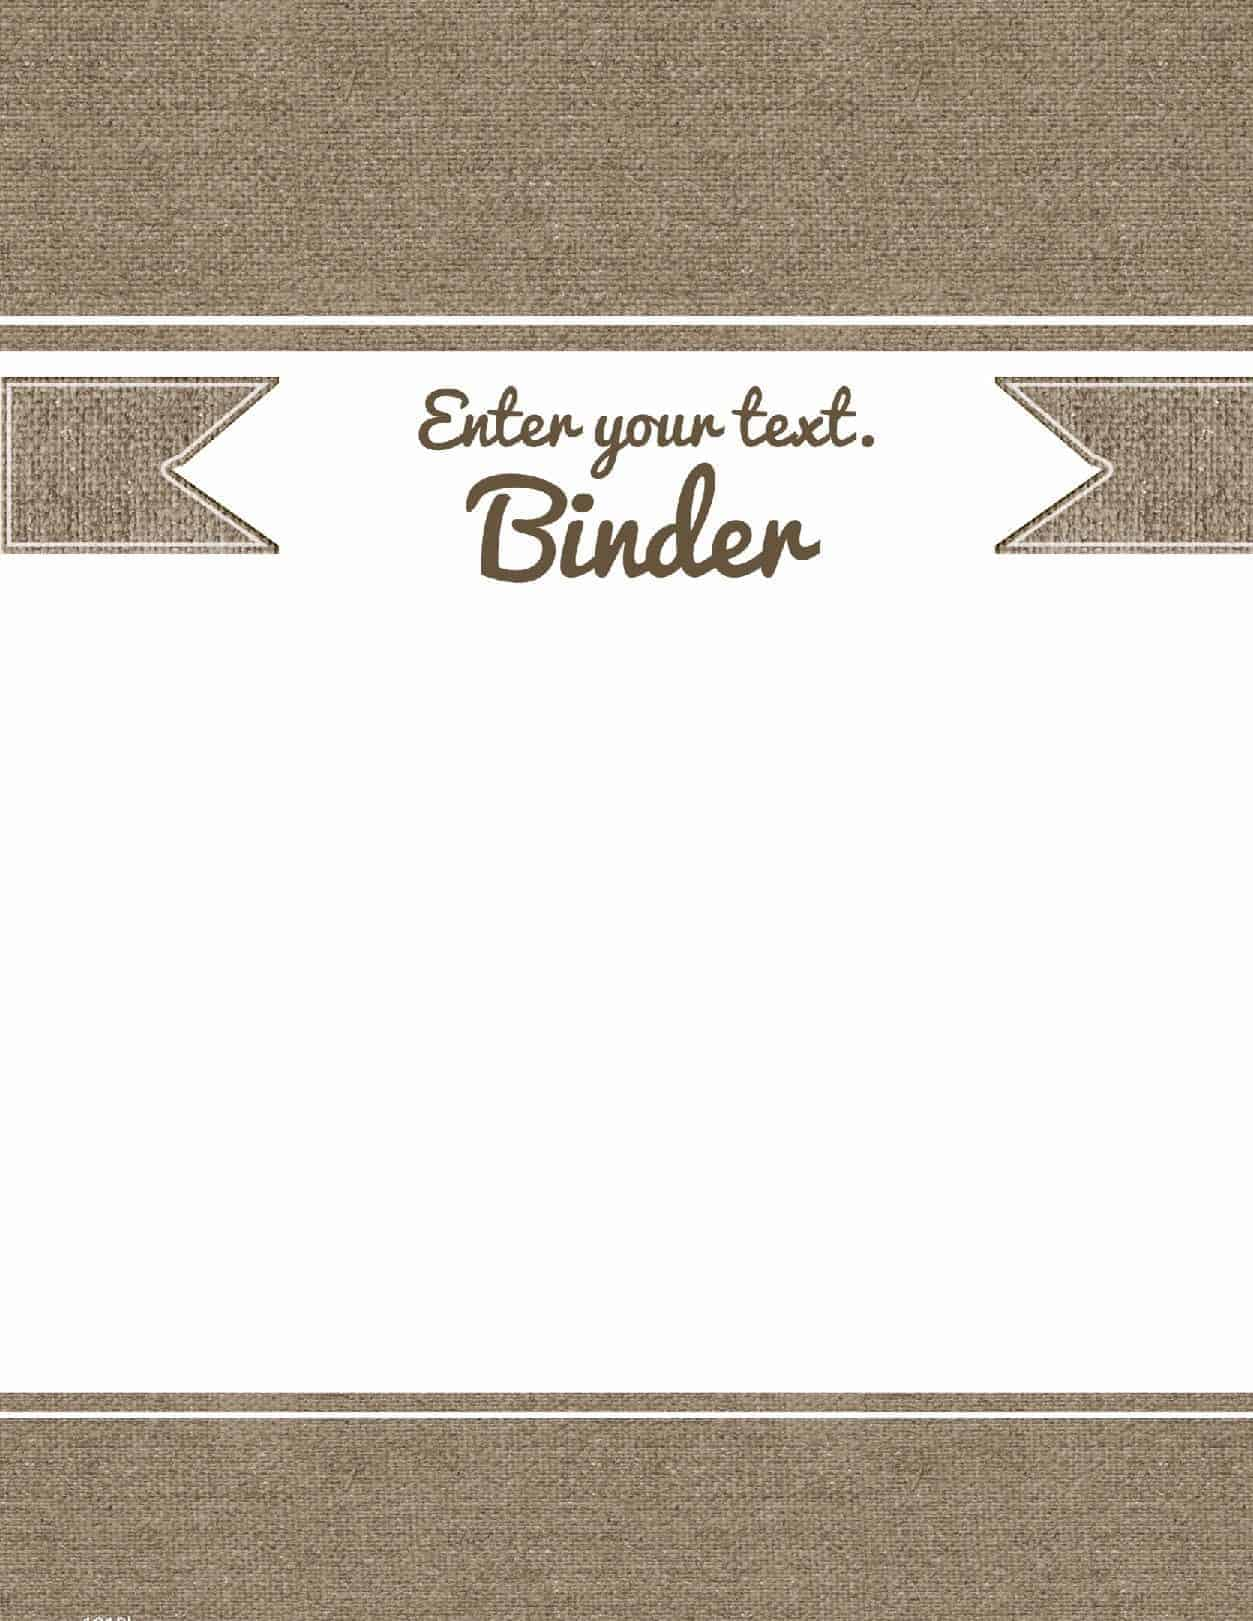 picture relating to Binder Covers Printable named Cost-free Binder Address Templates Personalize On the net Print at